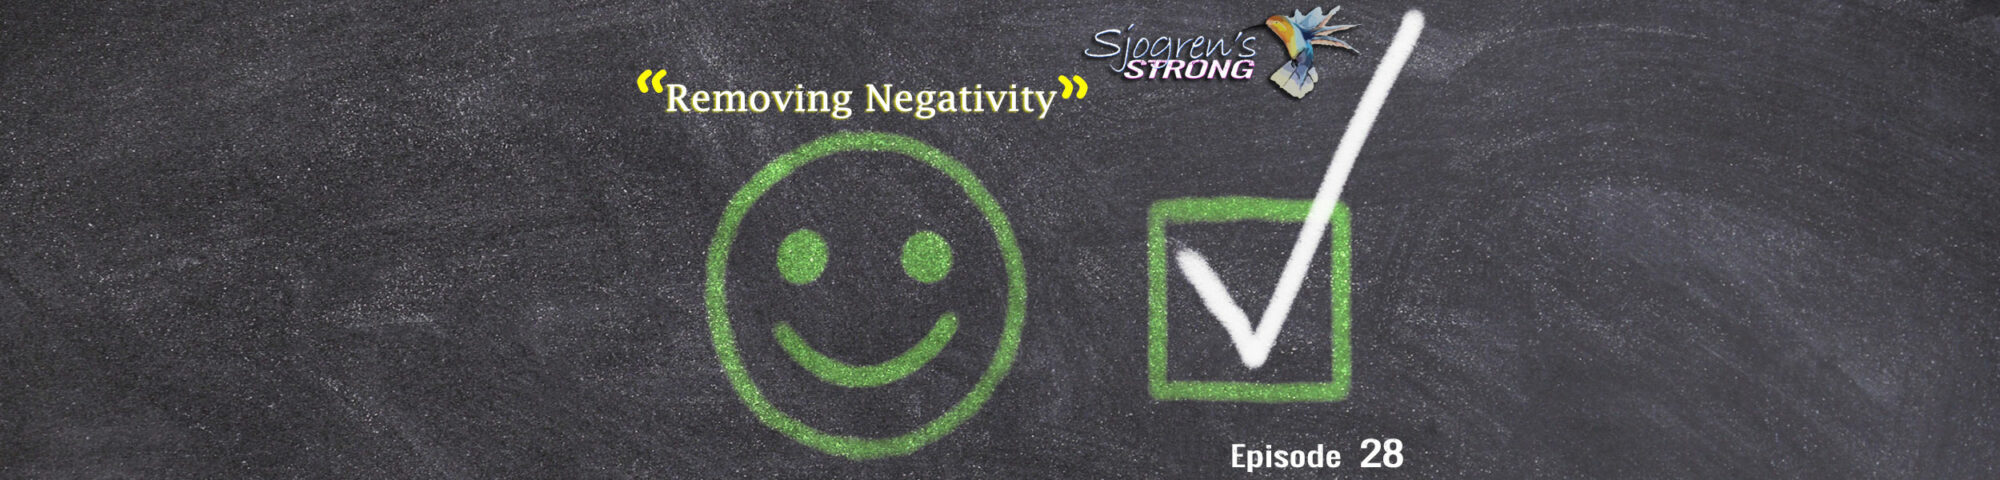 Sjogren's Strong episode 28, Removing Negativity